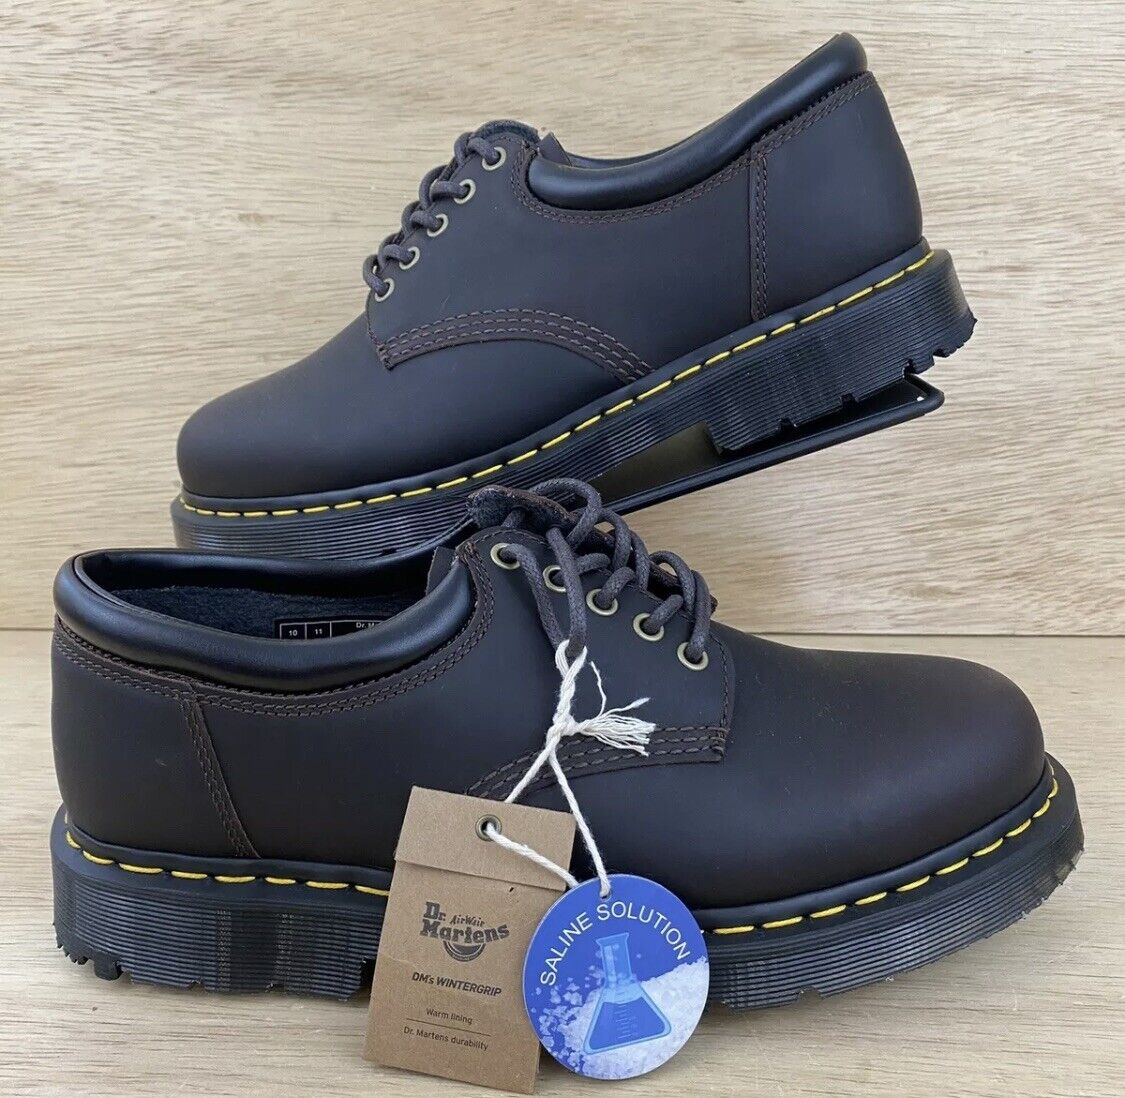 Dr. Martens 24043 Mens Size 10 Shoes Dark Brown Lace Up Low NEW